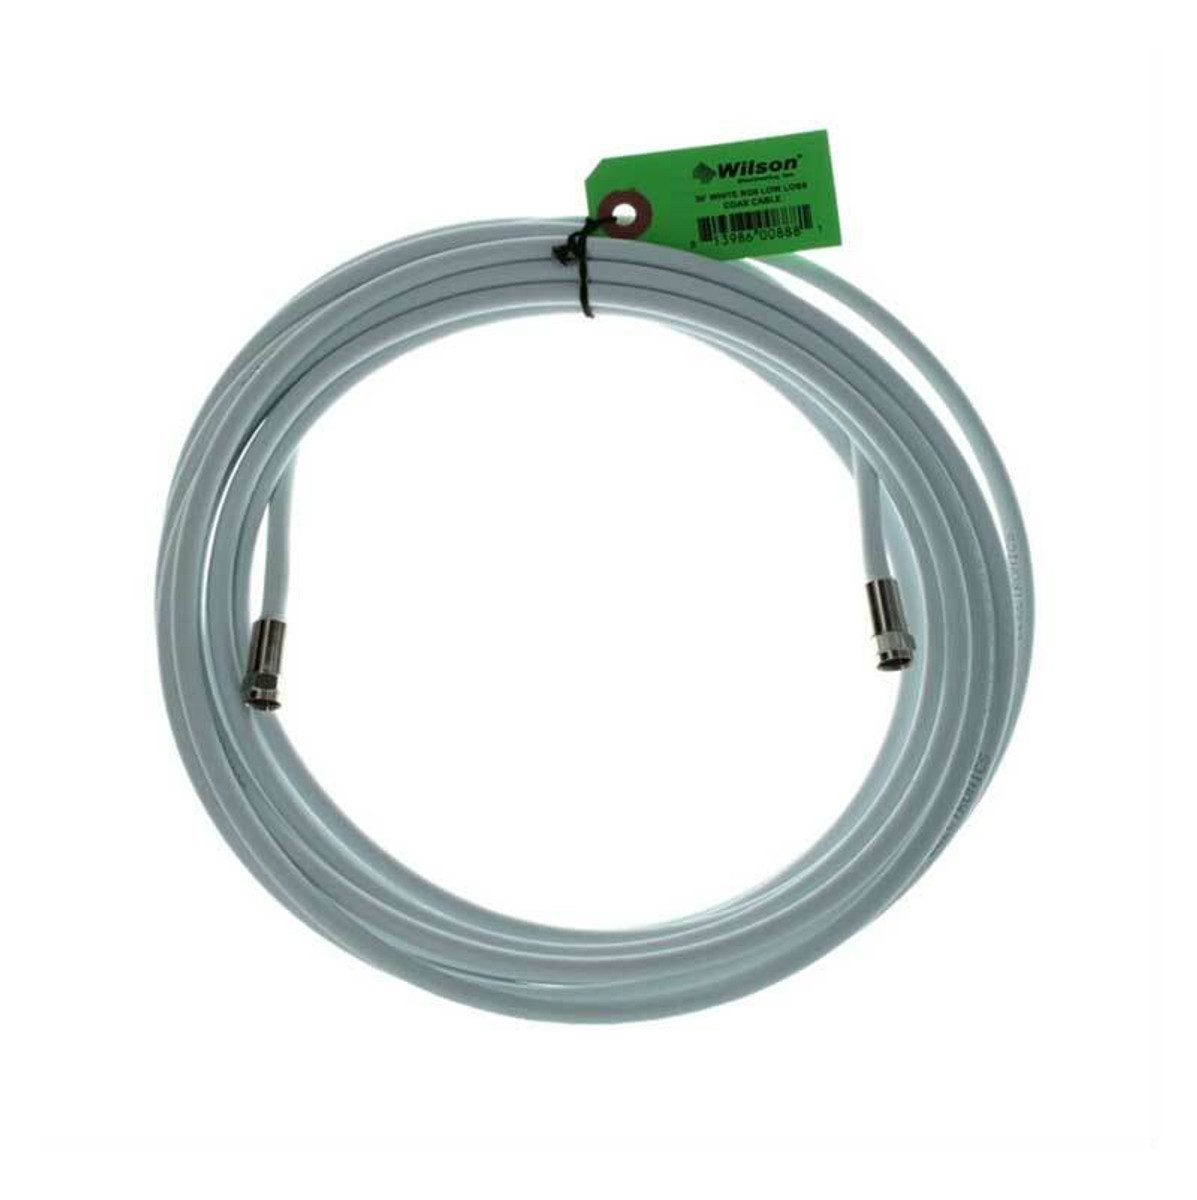 weBoost (Wilson) 950630 RG6 F-Male to F-Male | 30 ft White Cable